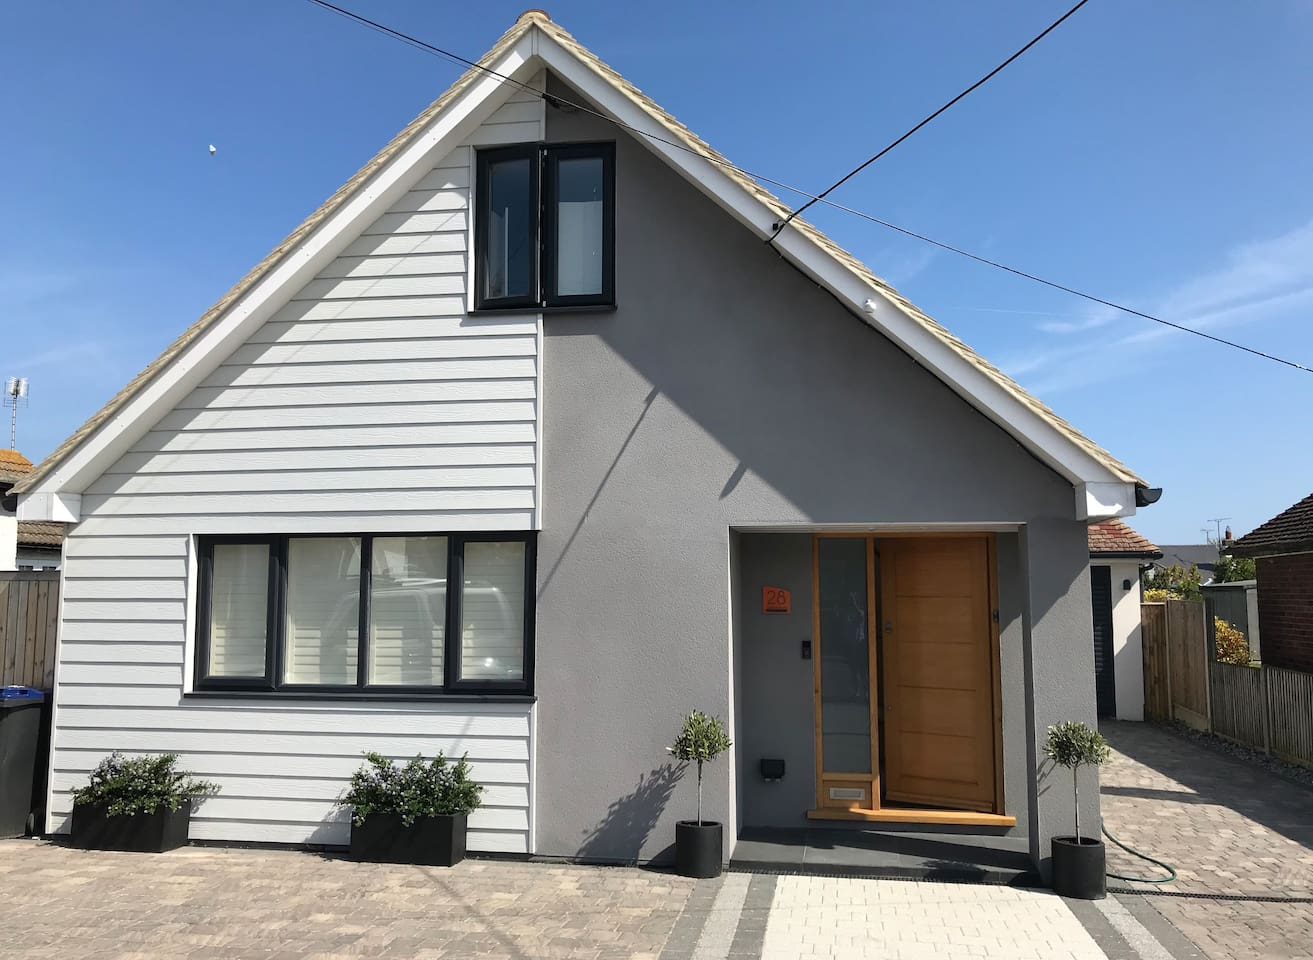 Bedroom Suite Two is upstairs in Tuckshore near Tankerton seafront.  Modern house providing smart, clean bedroom suite only.